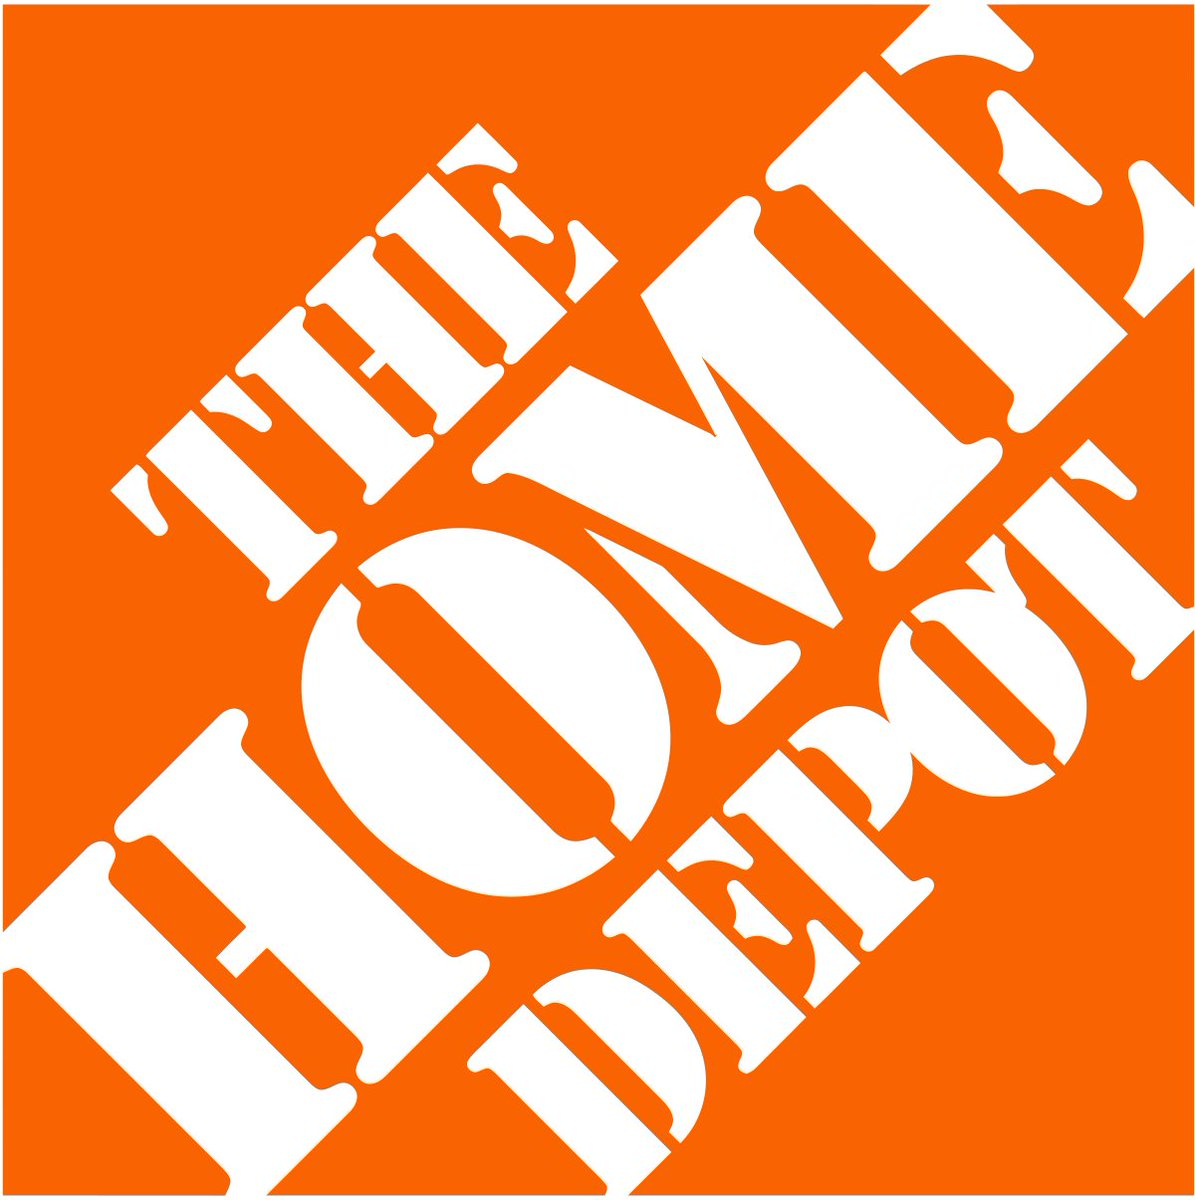 Our painting division has partnered with Home Depot and Sherwin Williams to ensure quality products and service!  Schedule your painting project today!  206-368-4088  #Painting #HomeImprovement #HomeDecor #HandymanServices #Handyman #Contractor #InteriorDesign #HomeProjects